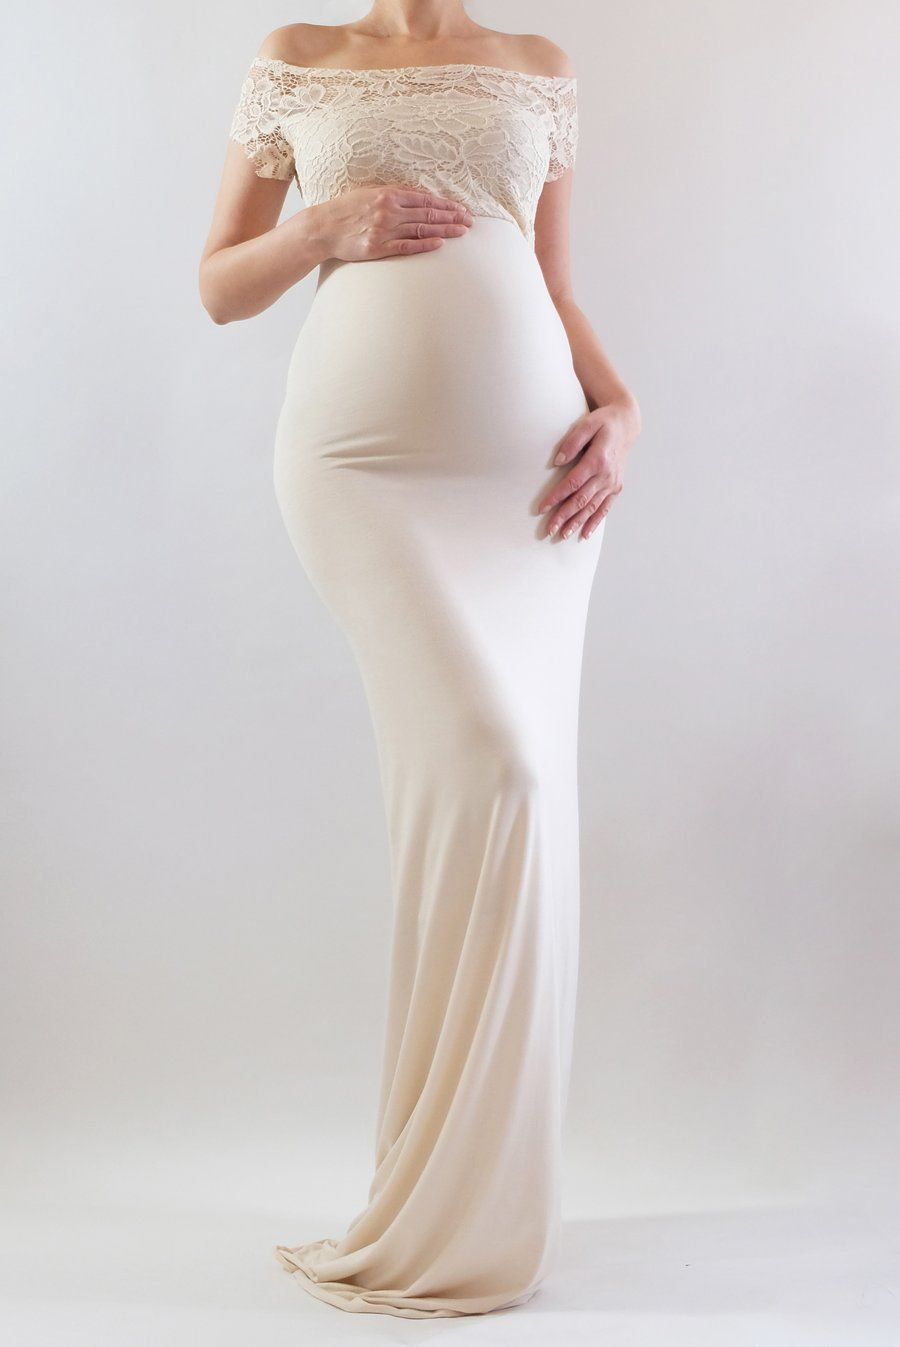 1a2c122e82bed AVIVA - This lovely fitted lace maternity gown is perfect as a lace wedding  dress, a maternity wedding guest dress, or baby shower dress!